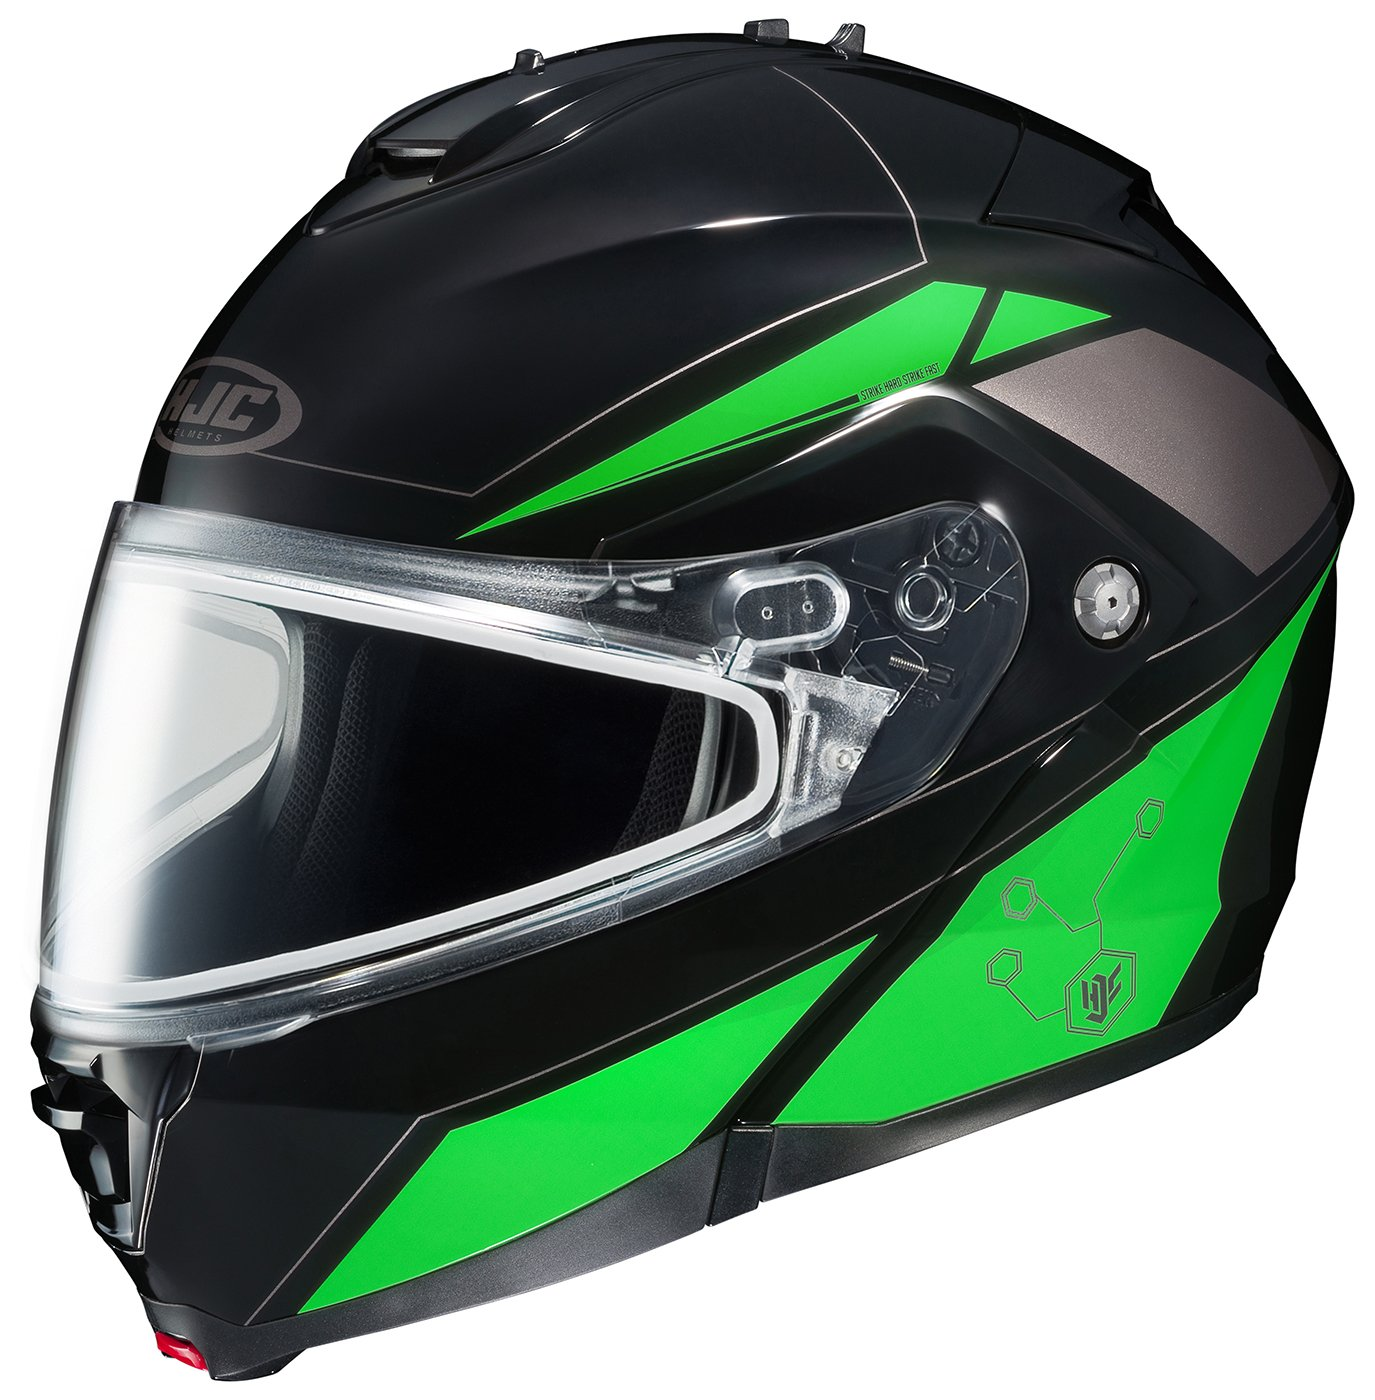 MC-4 Neon Green, 4X-Large HJC IS-MAX2SN Elemental Modular Snow Helmet Frameless Dual Lens Shield